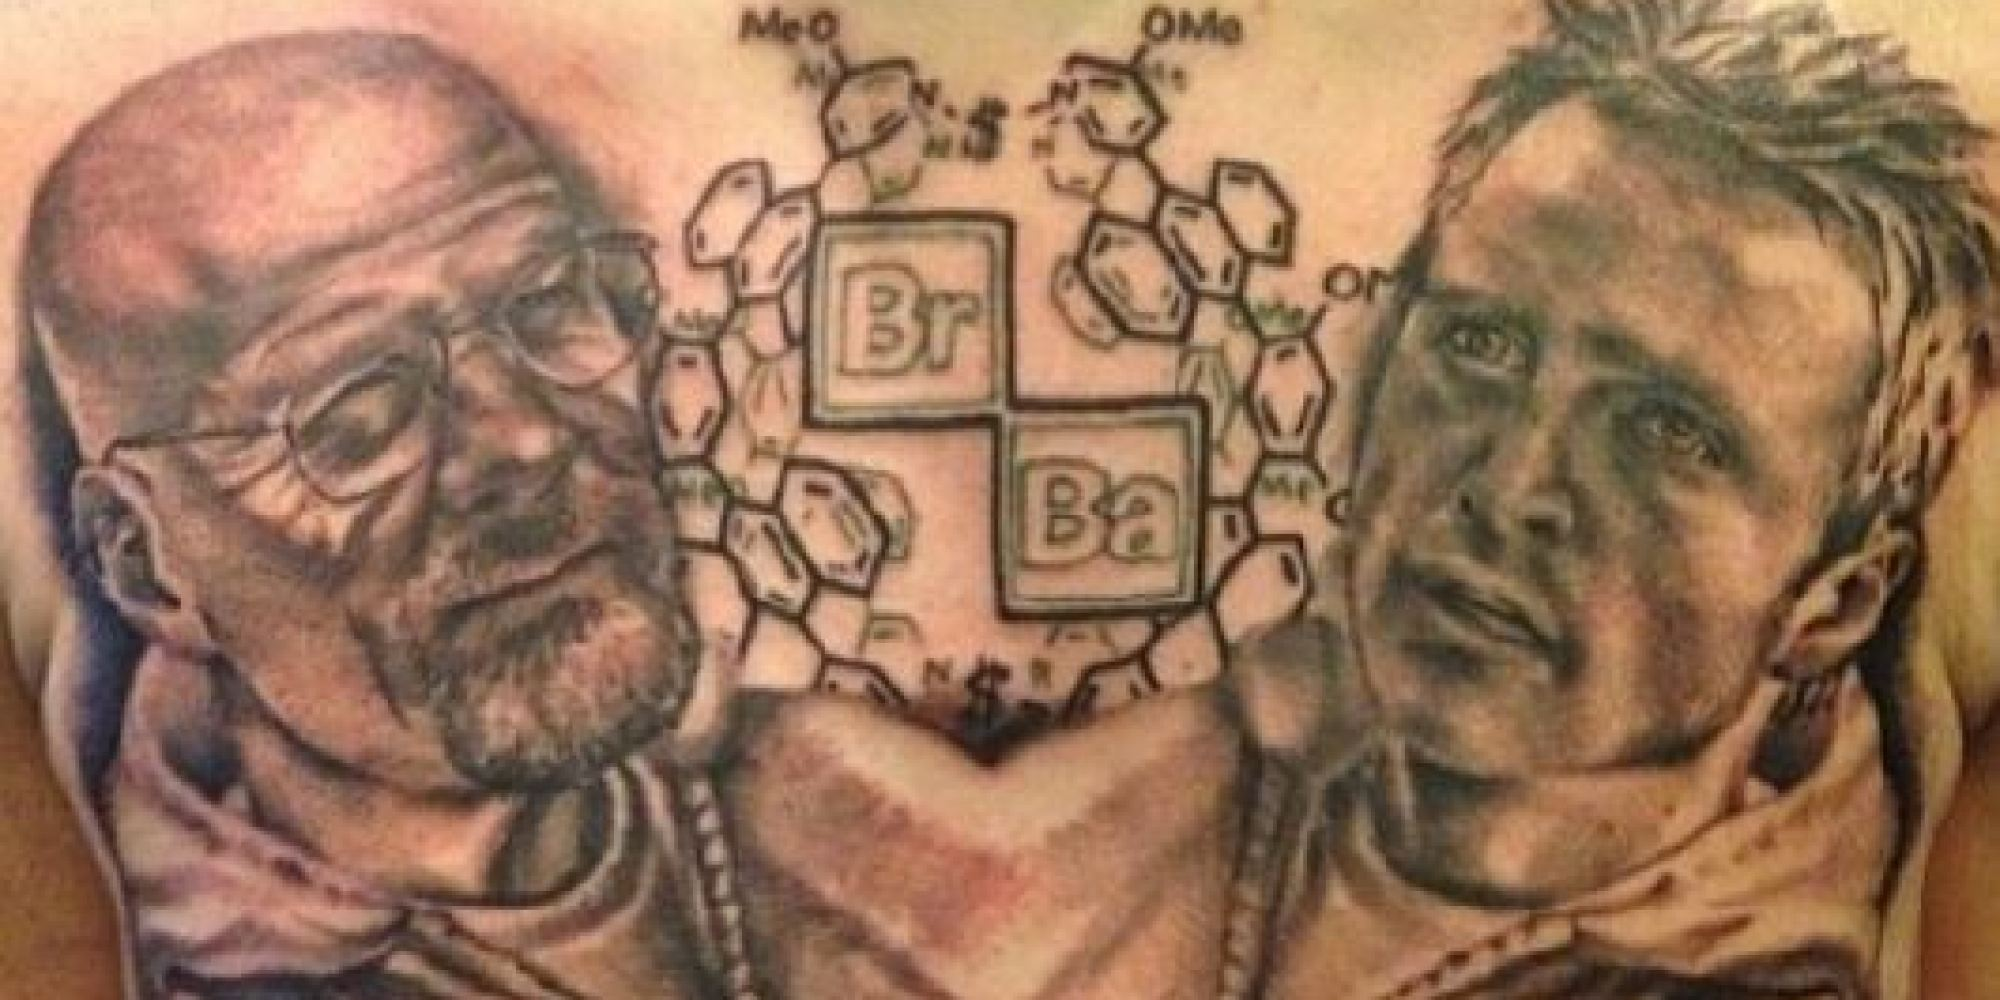 this breaking bad tattoo is the mark of a true superfan